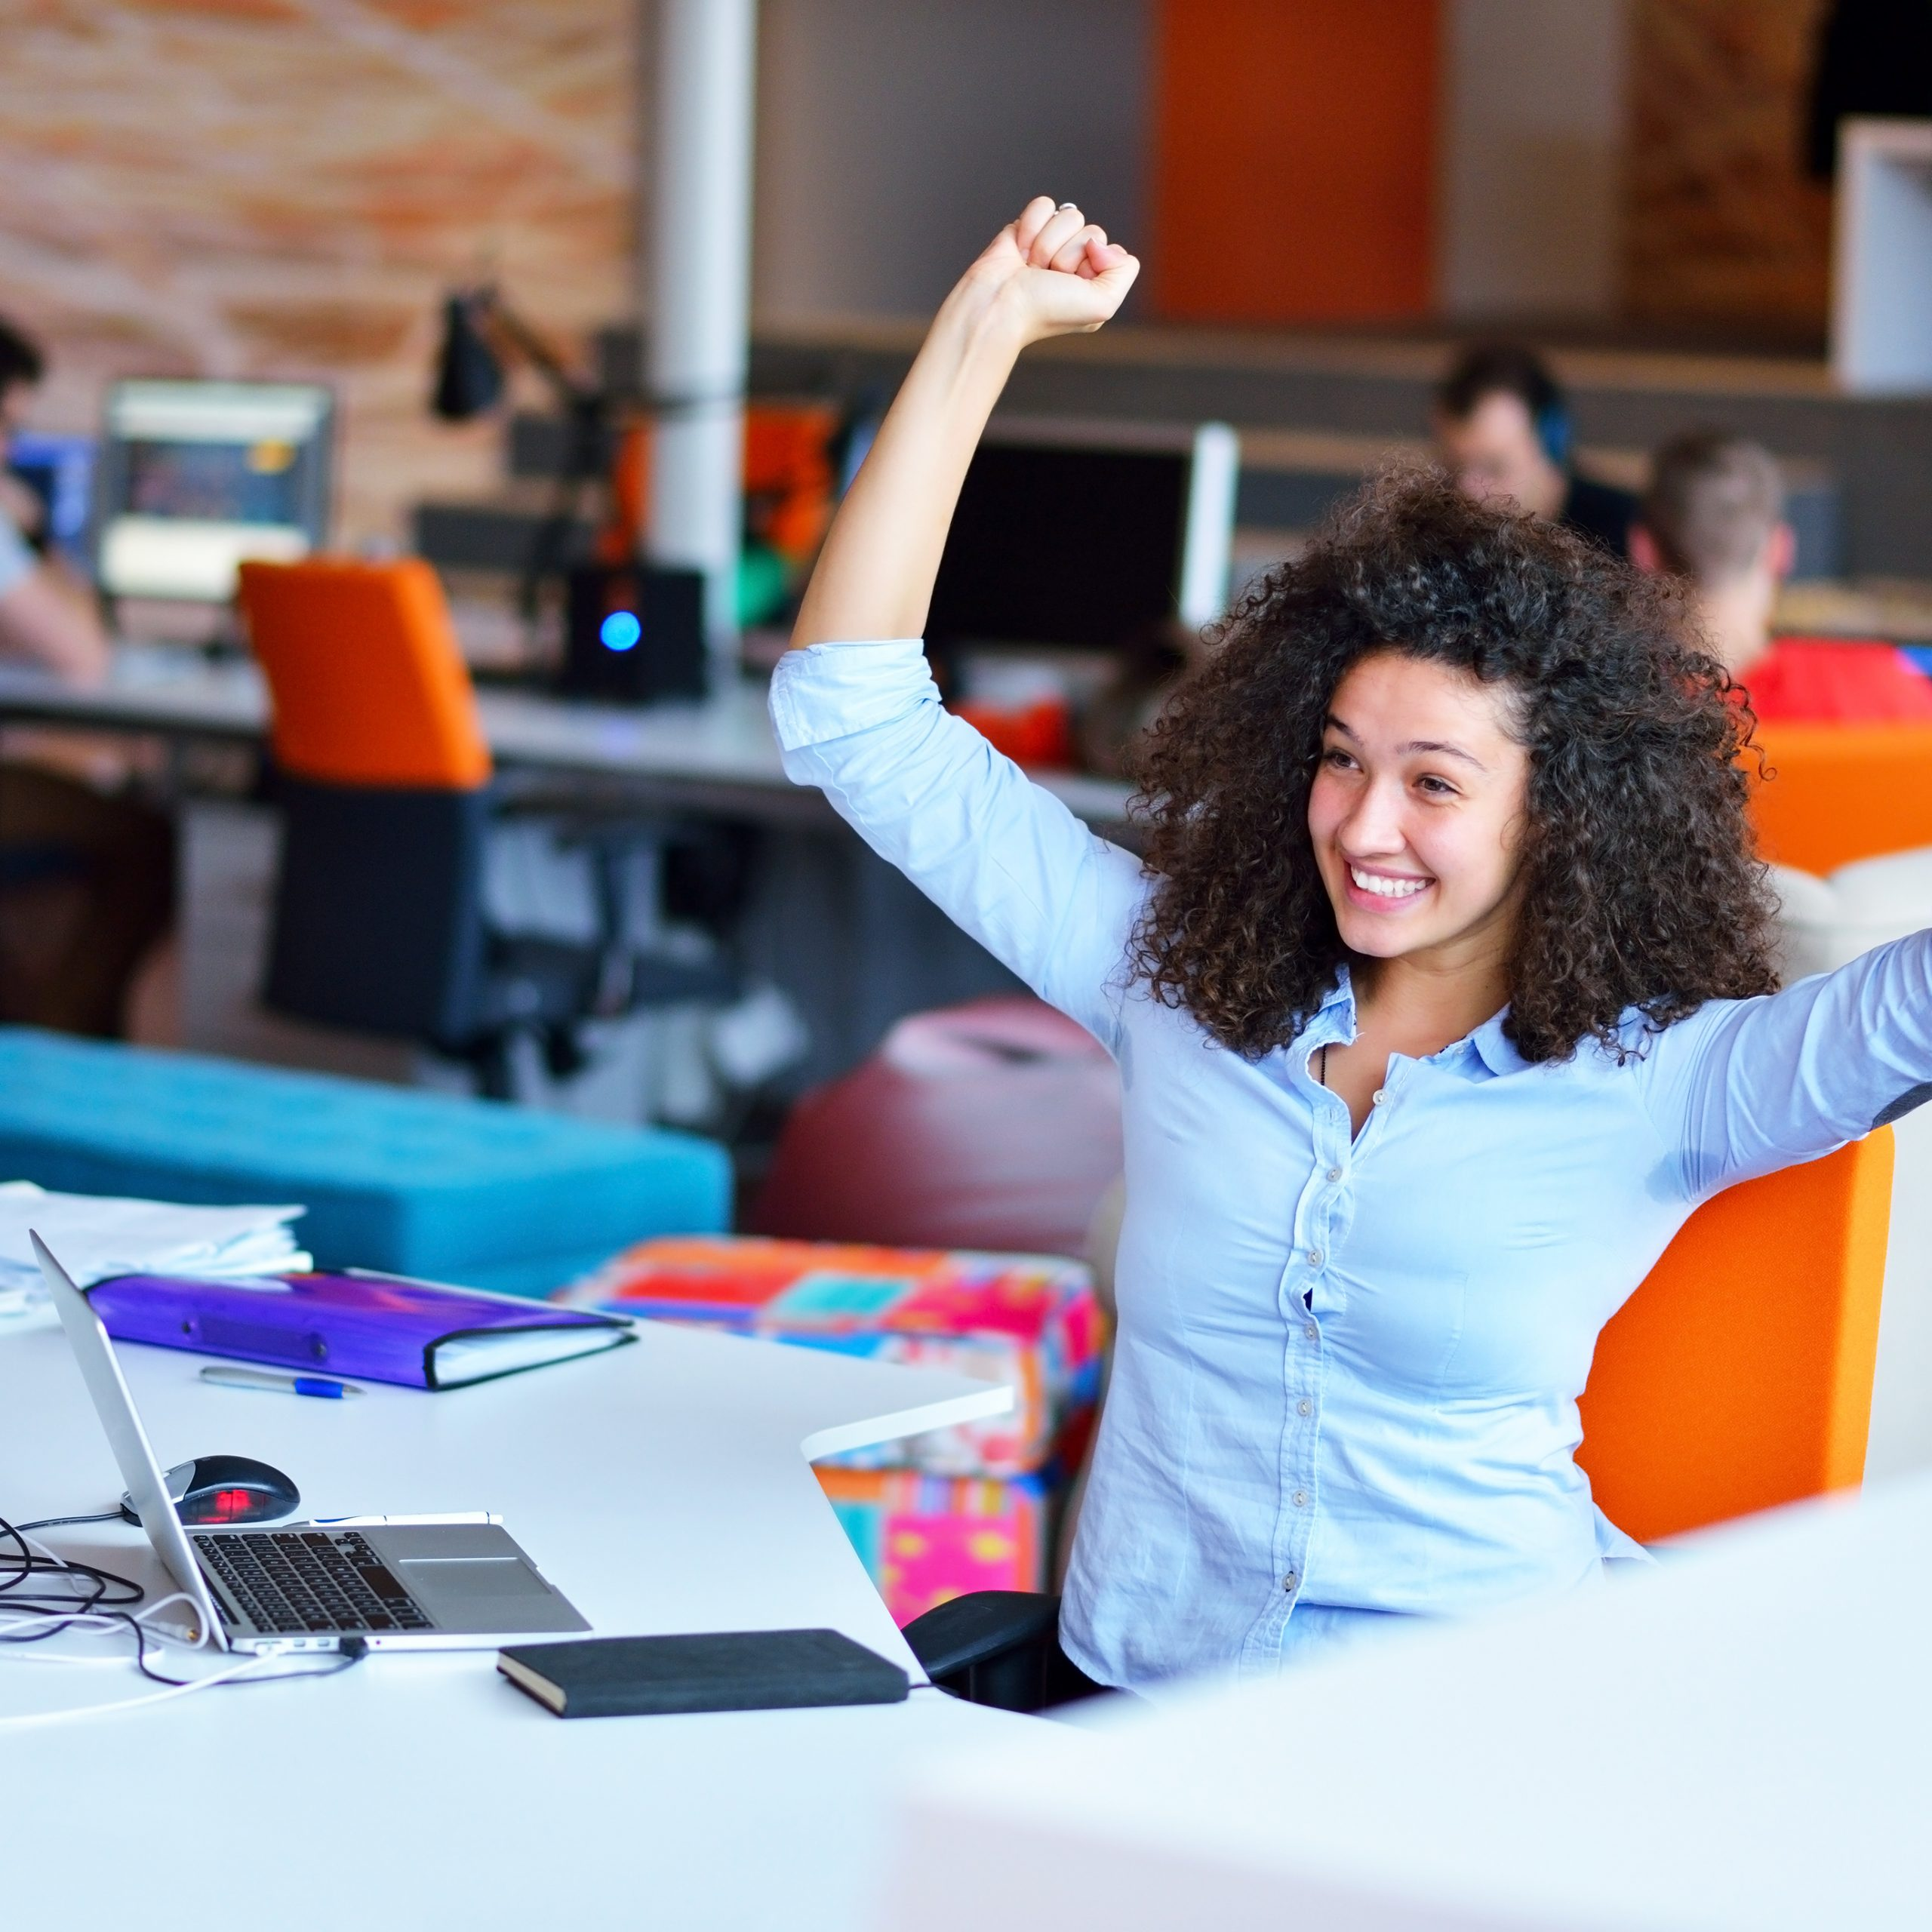 woman girl cheering at desk shutterstock_226373764 (2)